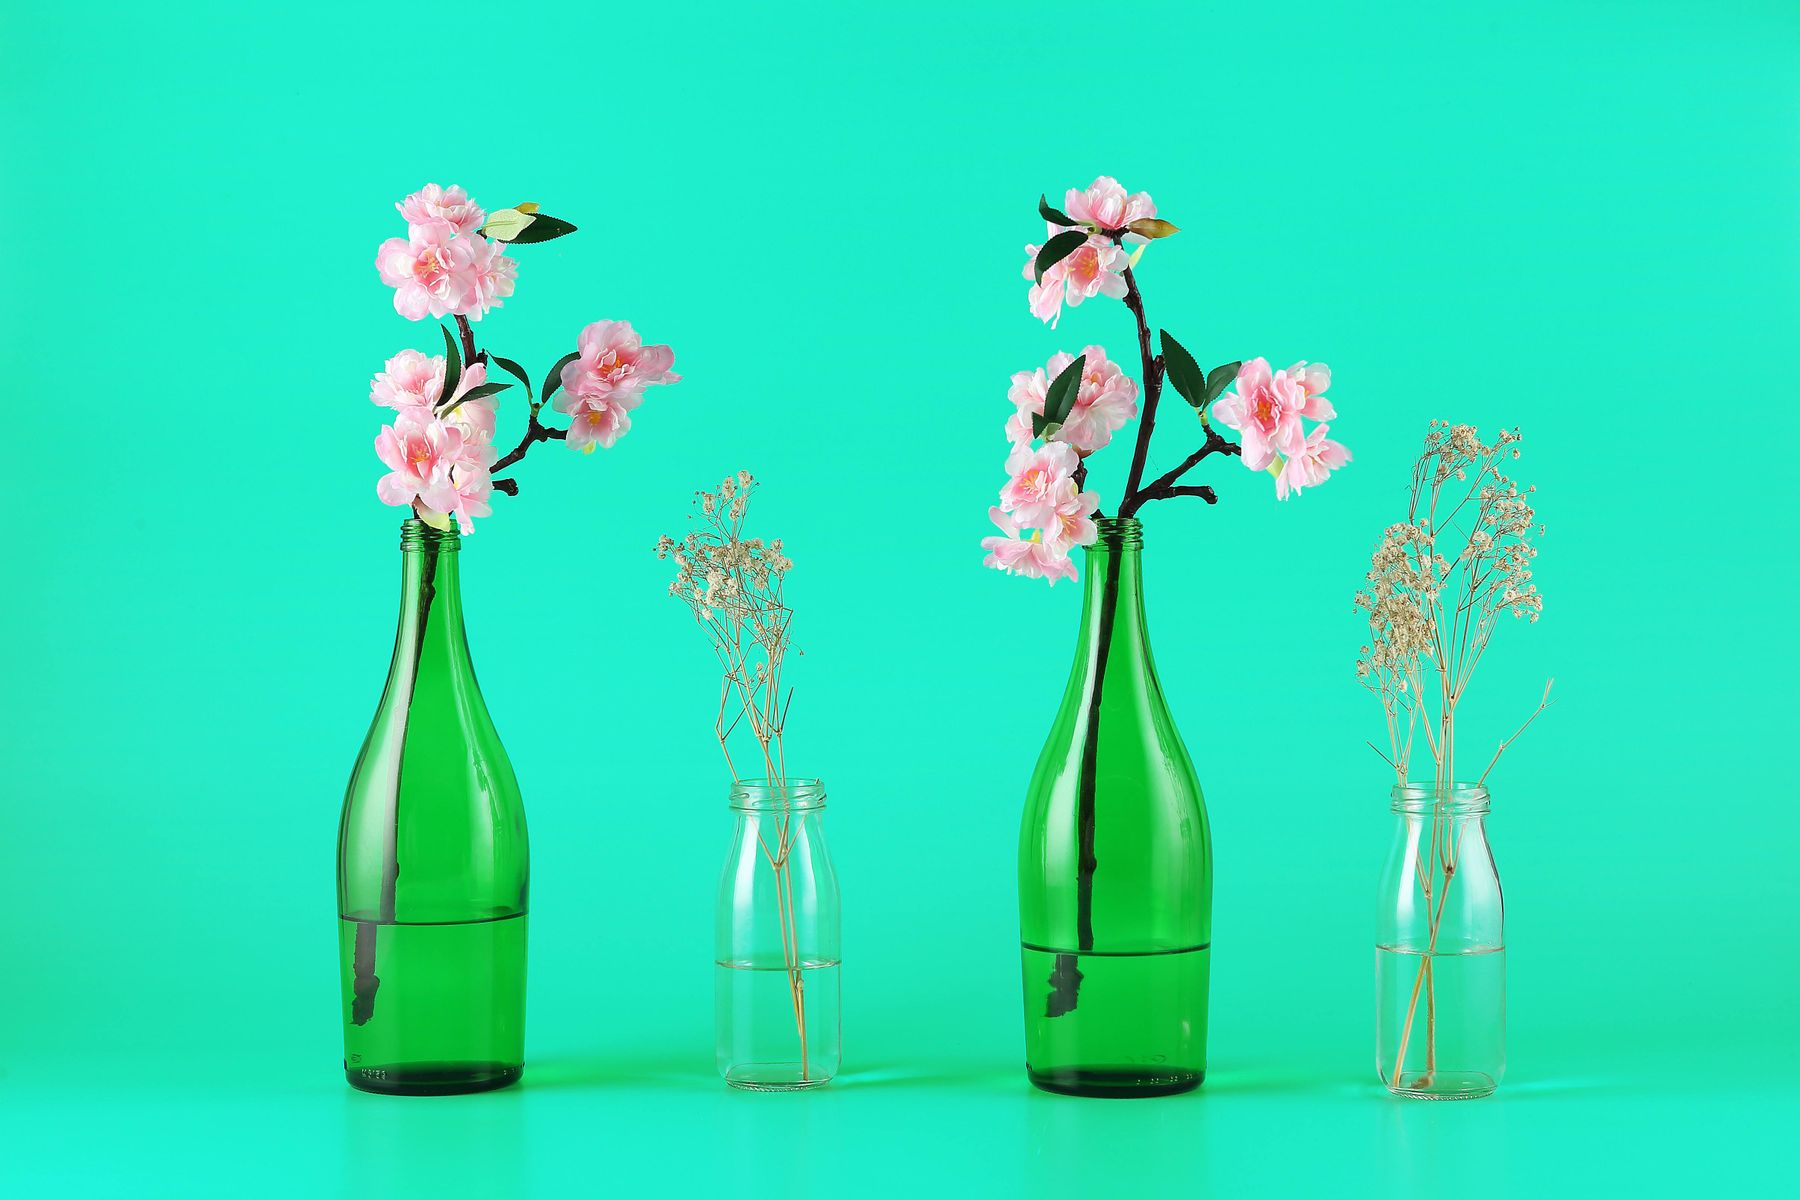 glass bottles with flowers